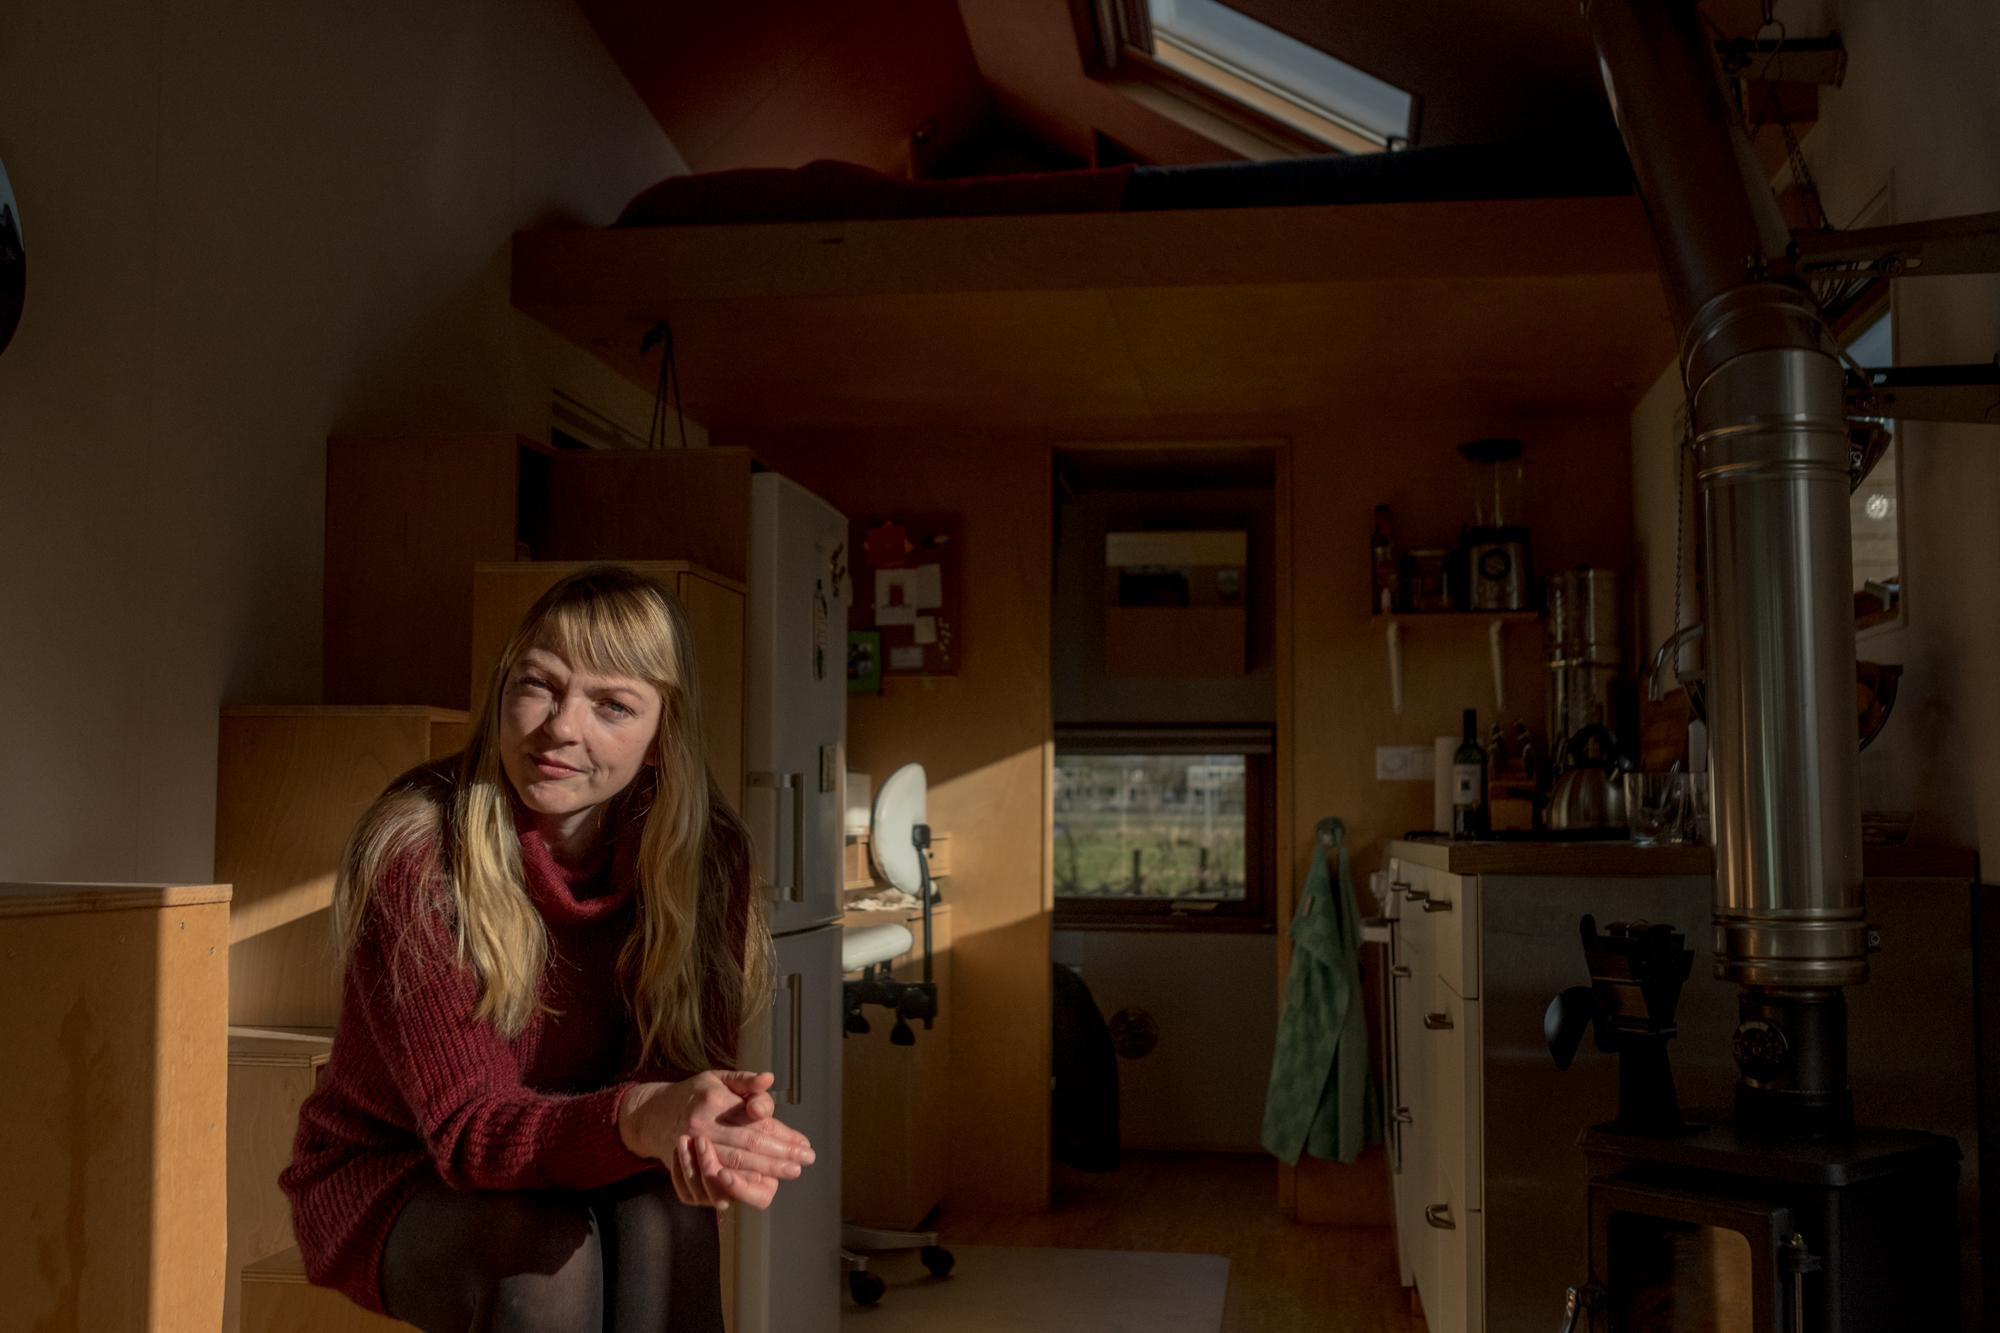 Marjolein Jonker, founder of the Tiny House Movement, is one of the Dutch pioneers and among the first ones to live in a tiny house.